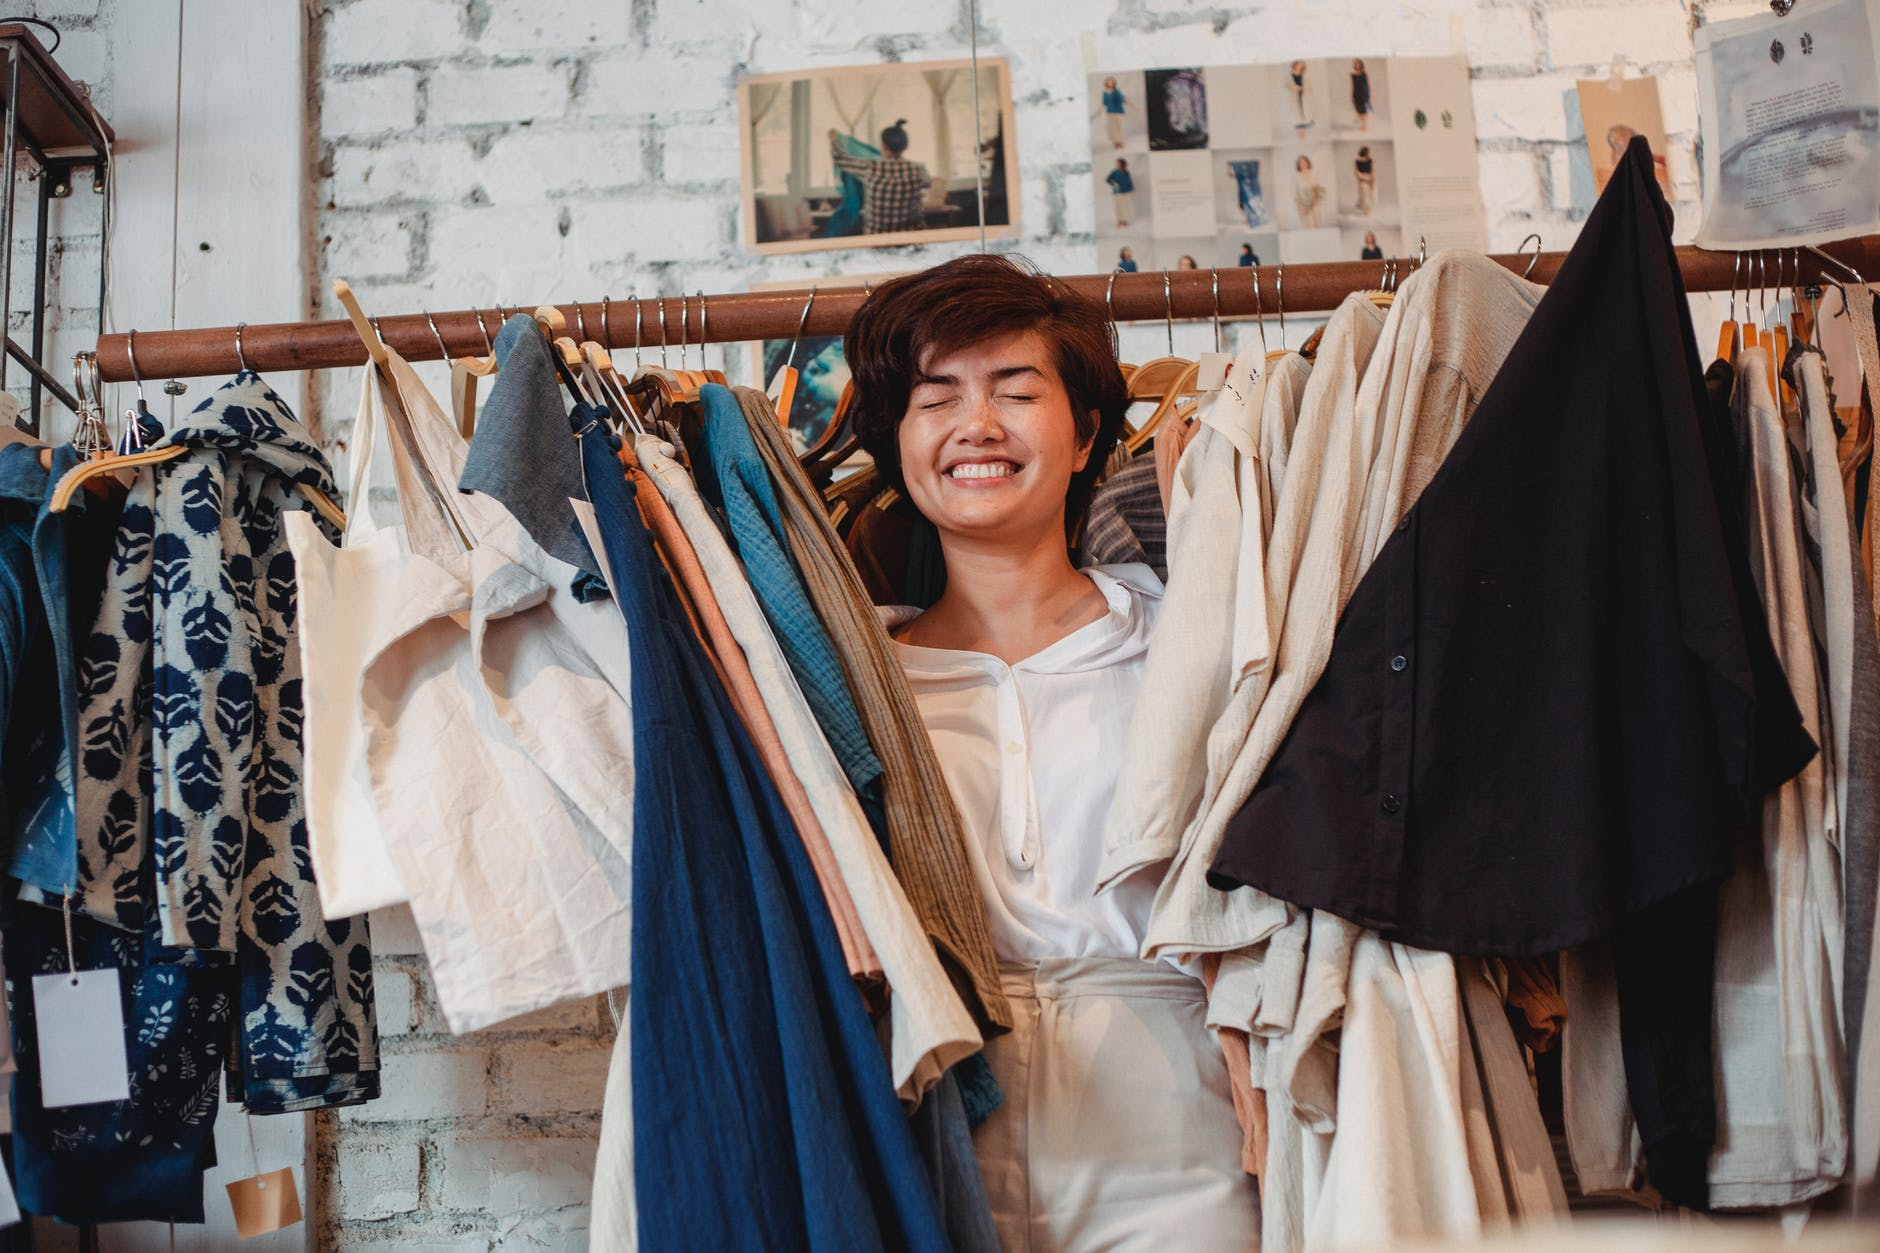 cheerful asian female customer standing among hanging clothes in store and smiling